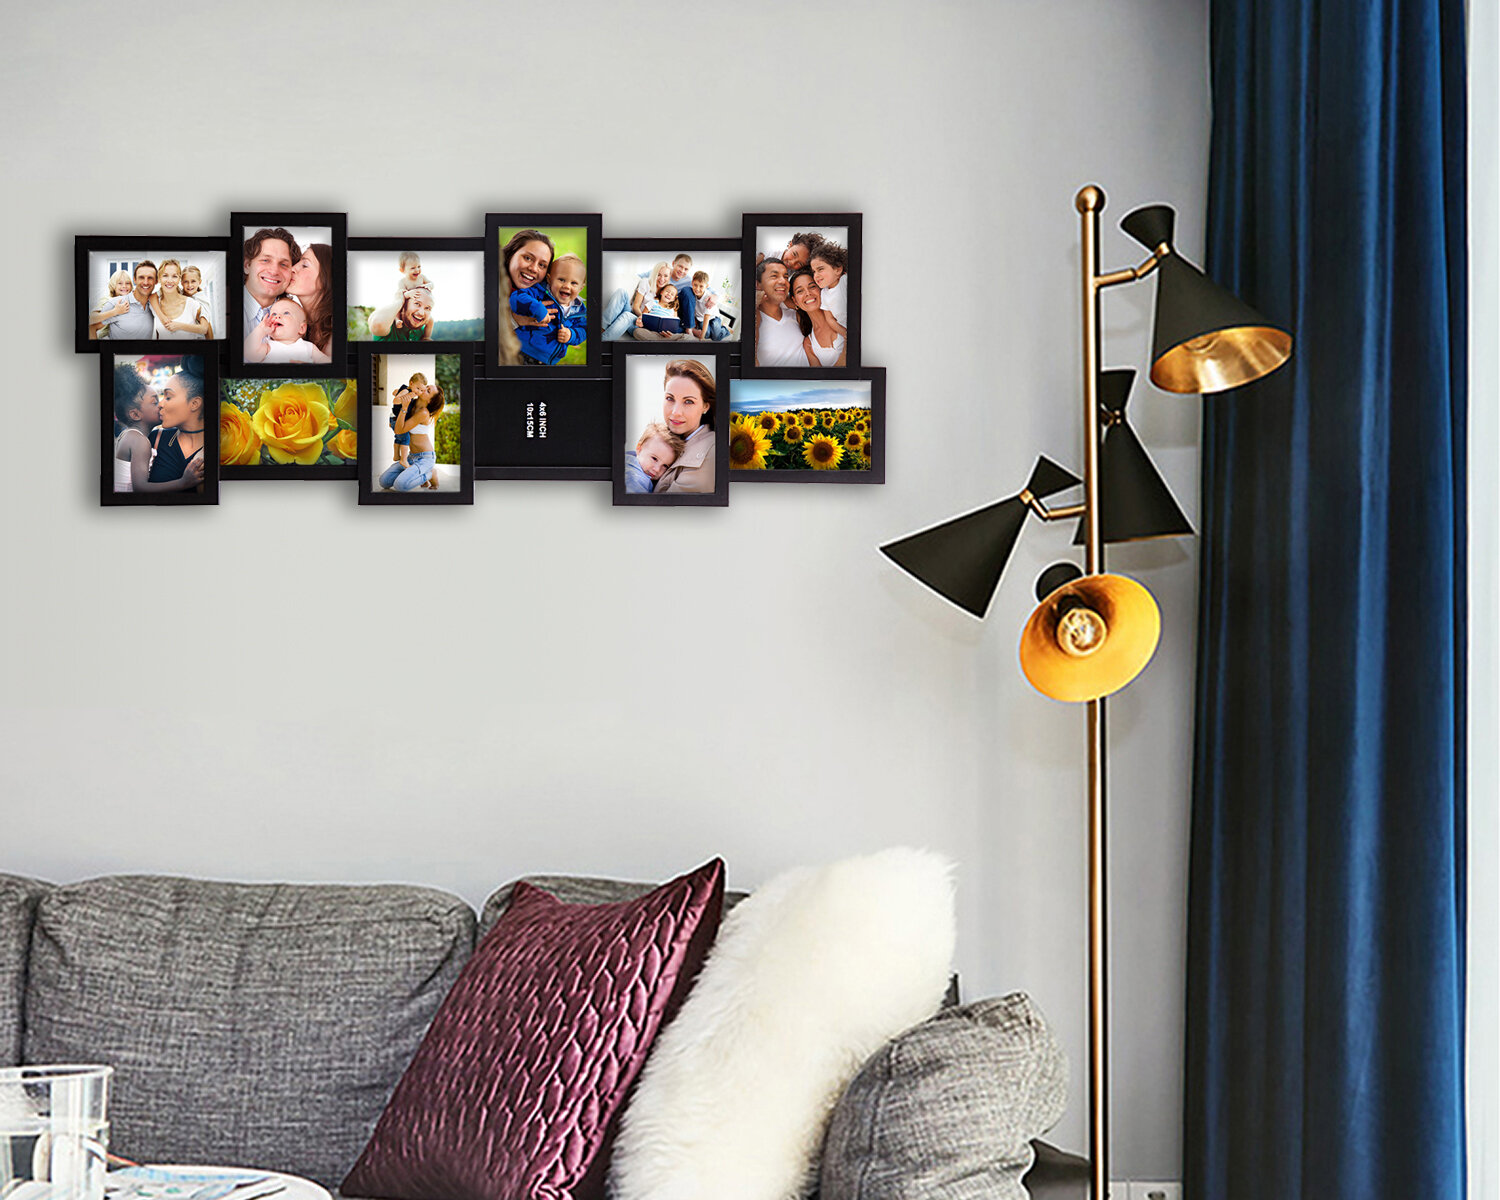 Ebern Designs Cadmium Selfie Collage Wall Hanging Picture Frame Reviews Wayfair